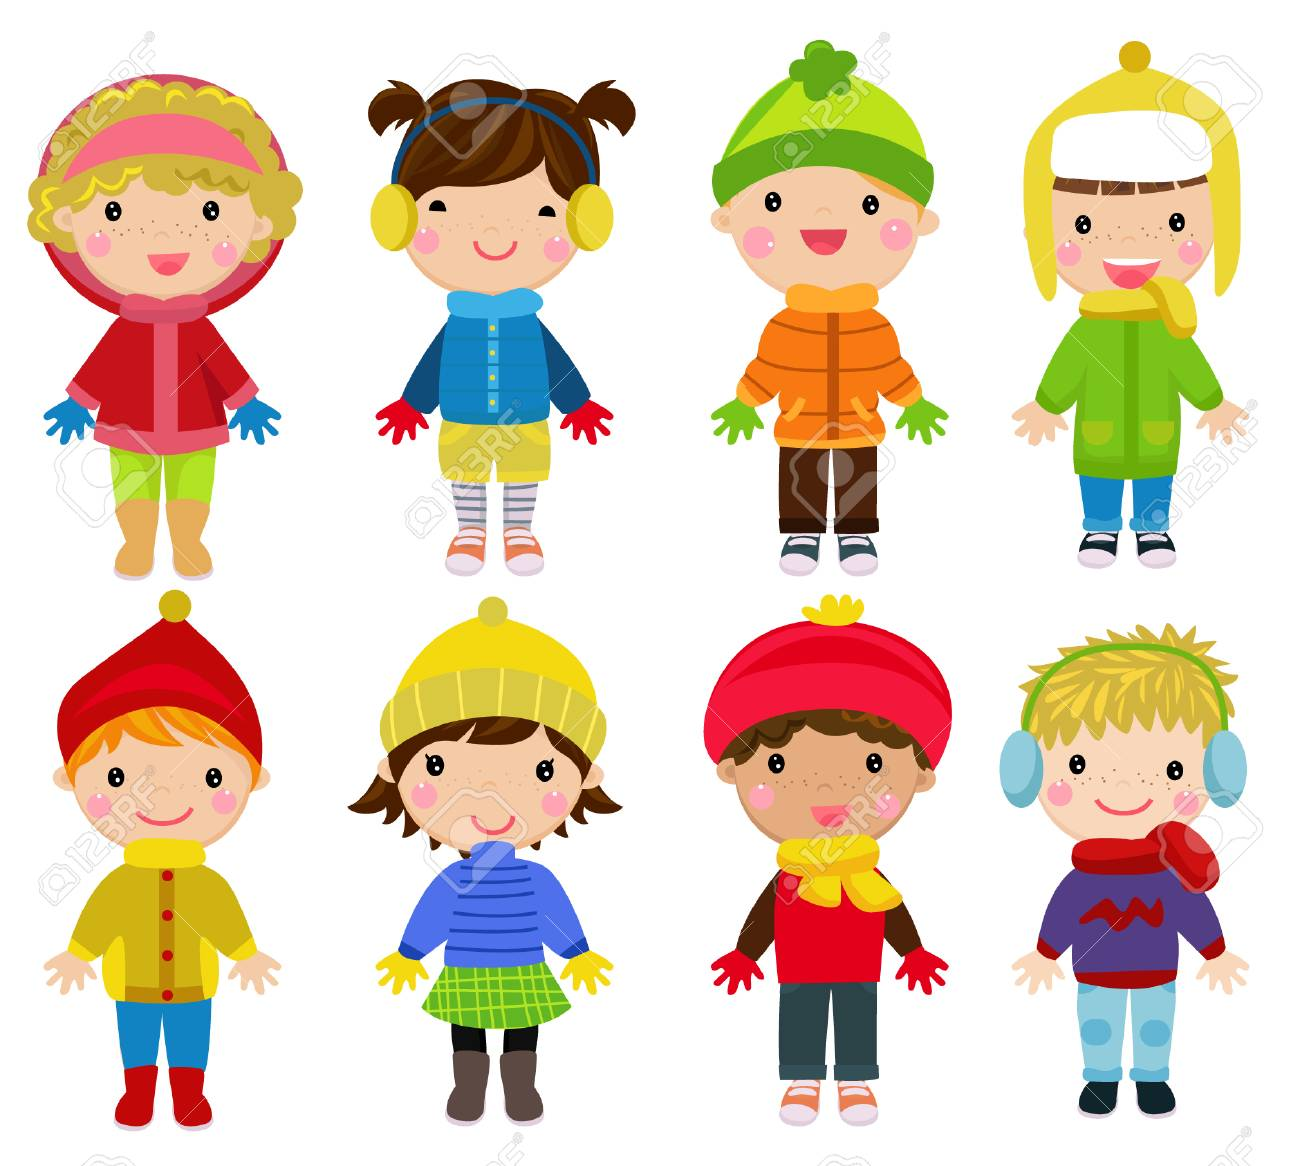 Illustration of Little kids wearing winter clothes.